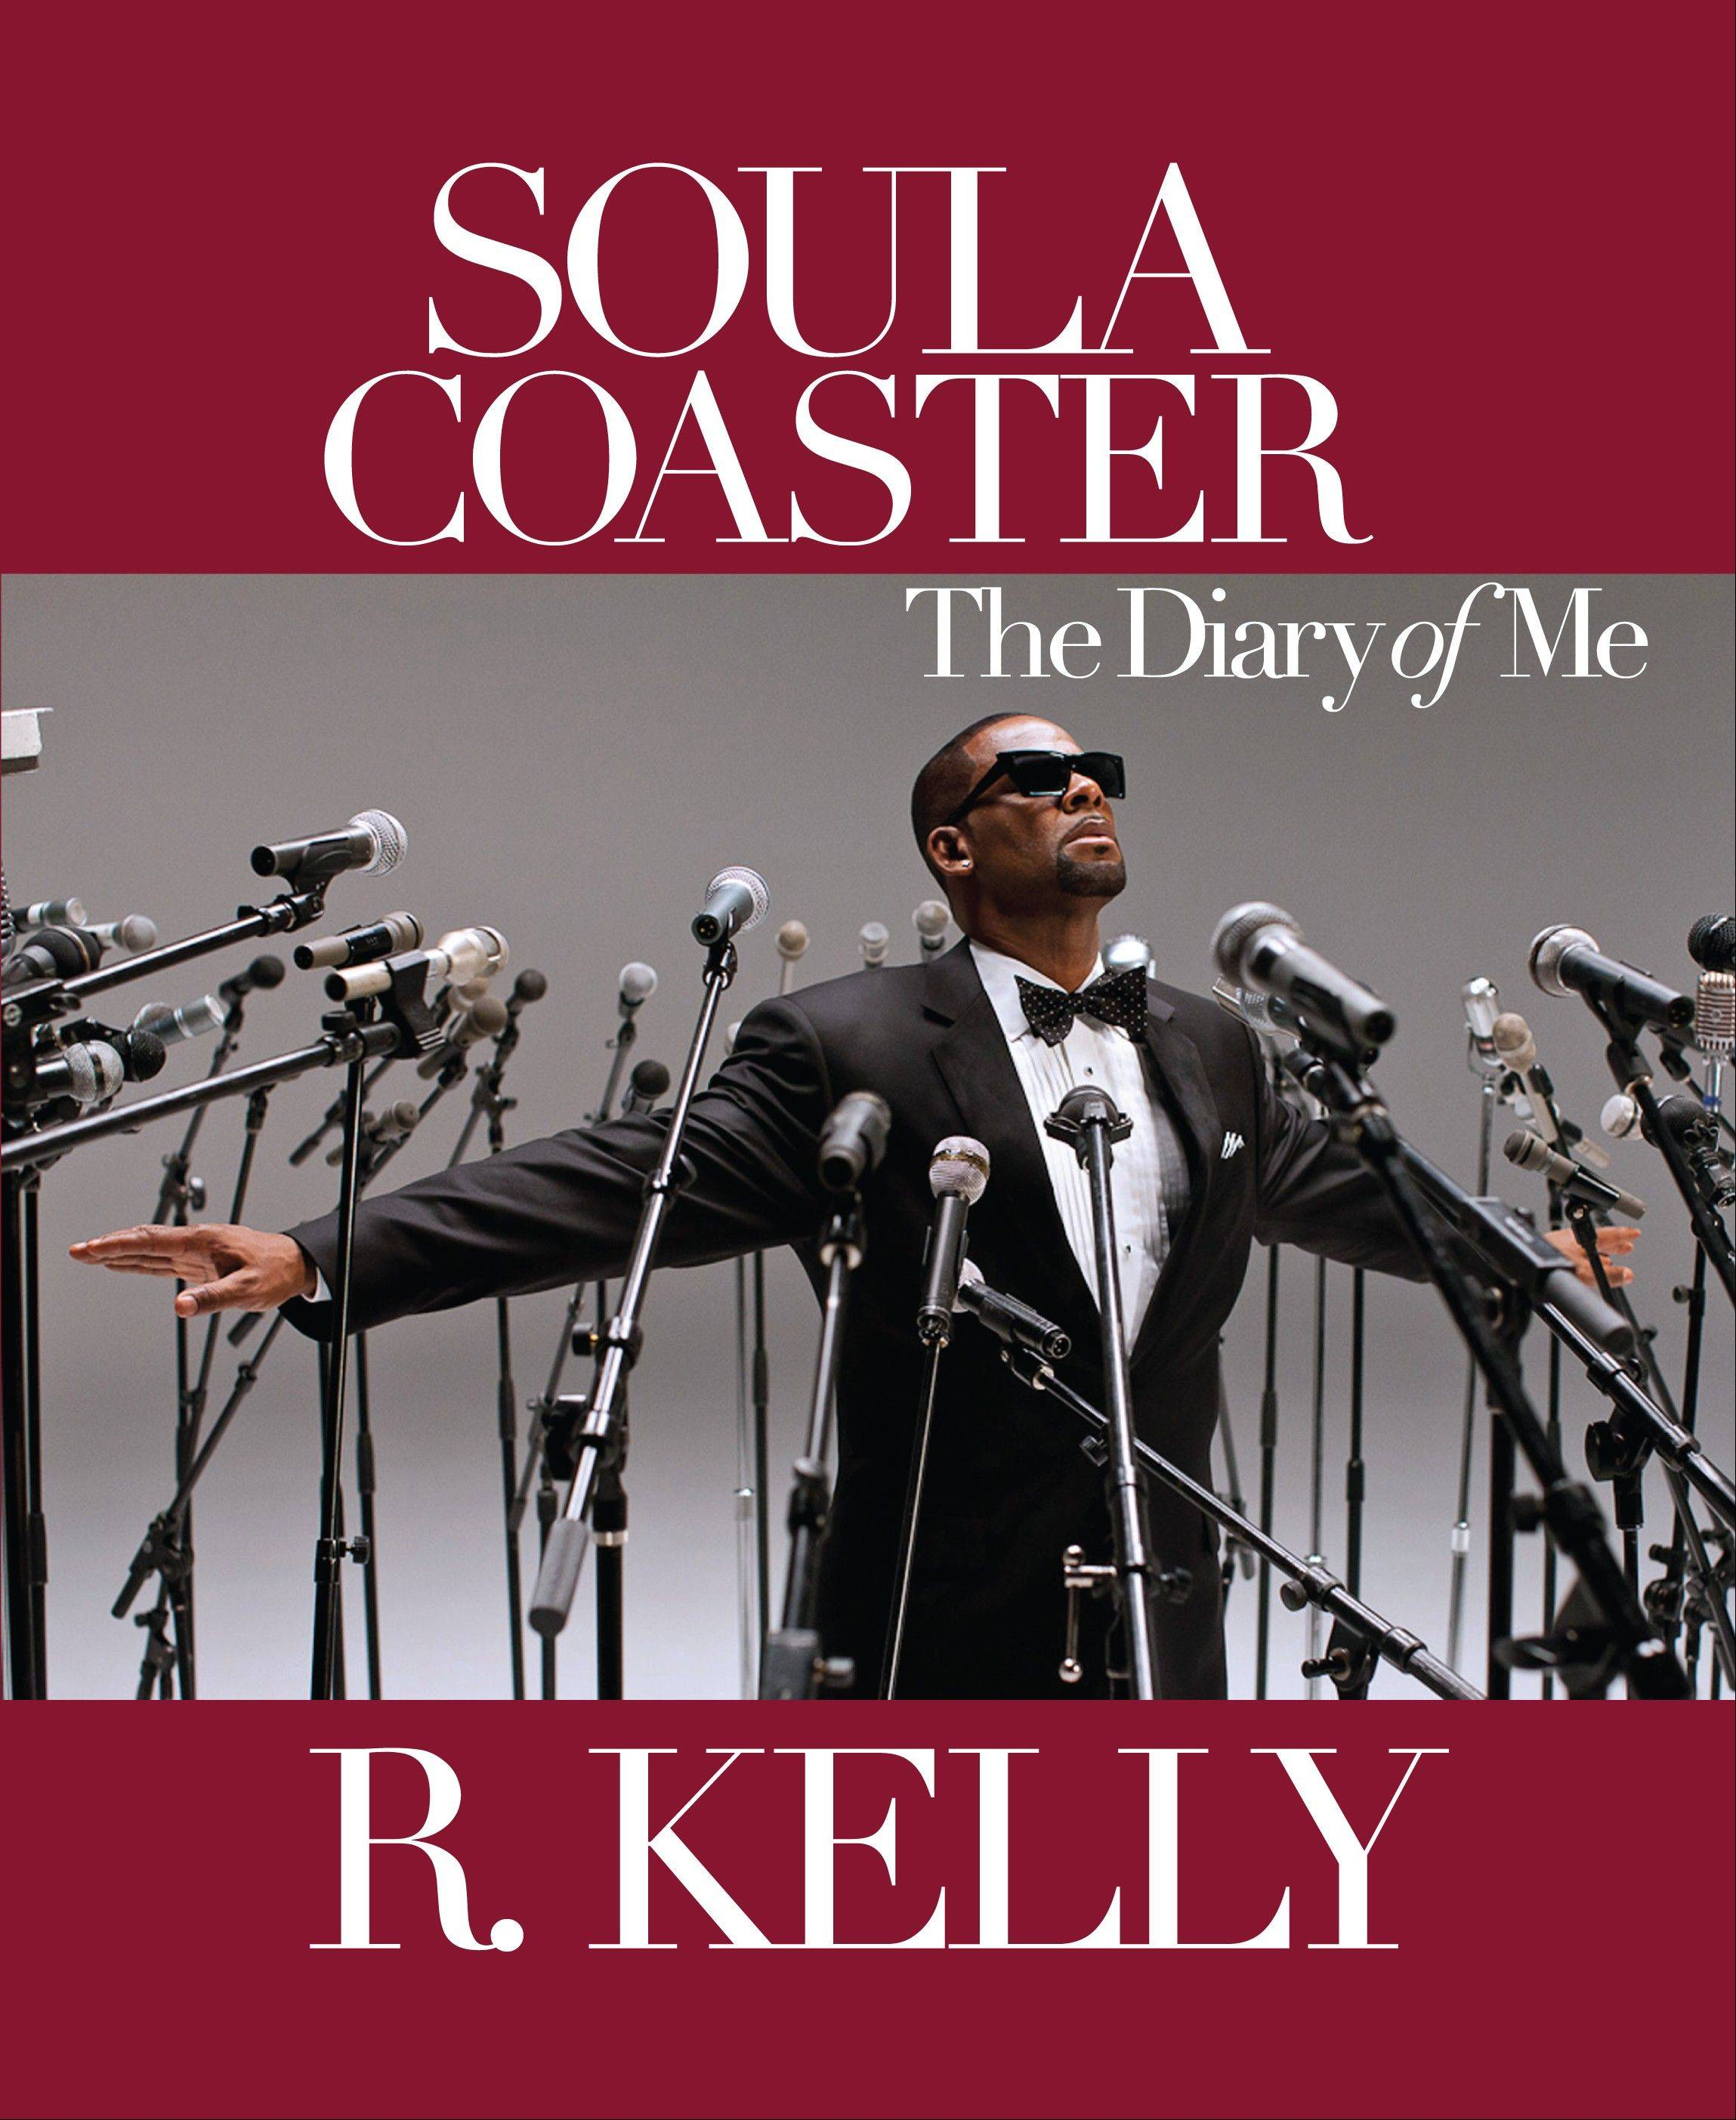 """Soulacoaster: The Diary of Me"" recounts the creative and family life of performer and musician R. Kelly."